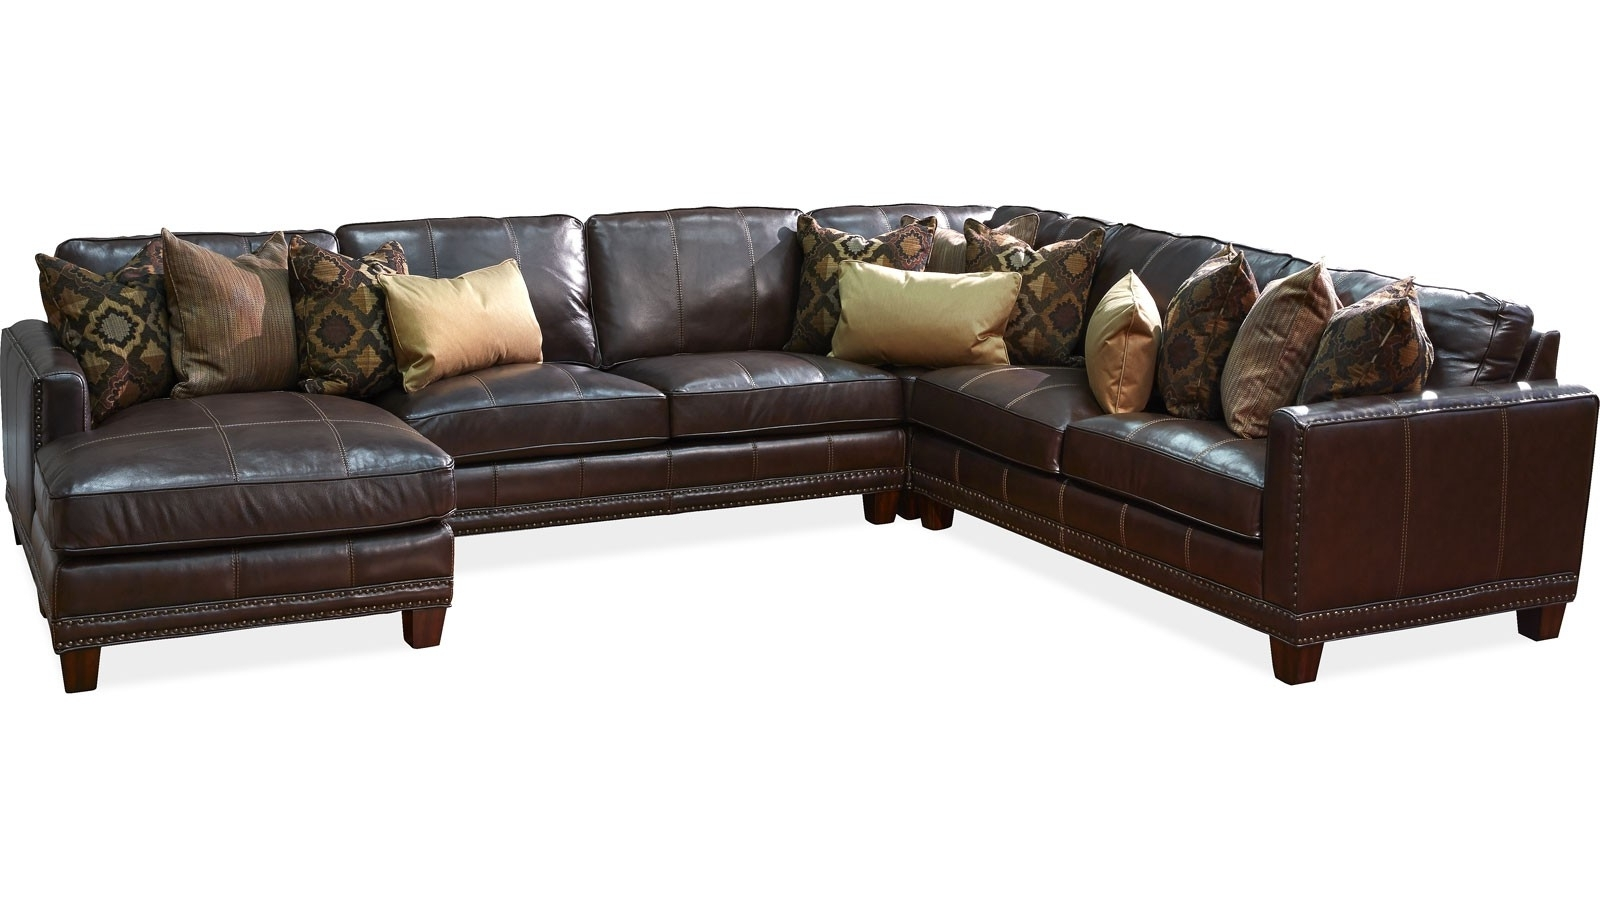 Gallery Furniture For Gallery Furniture Sectional Sofas (View 7 of 20)